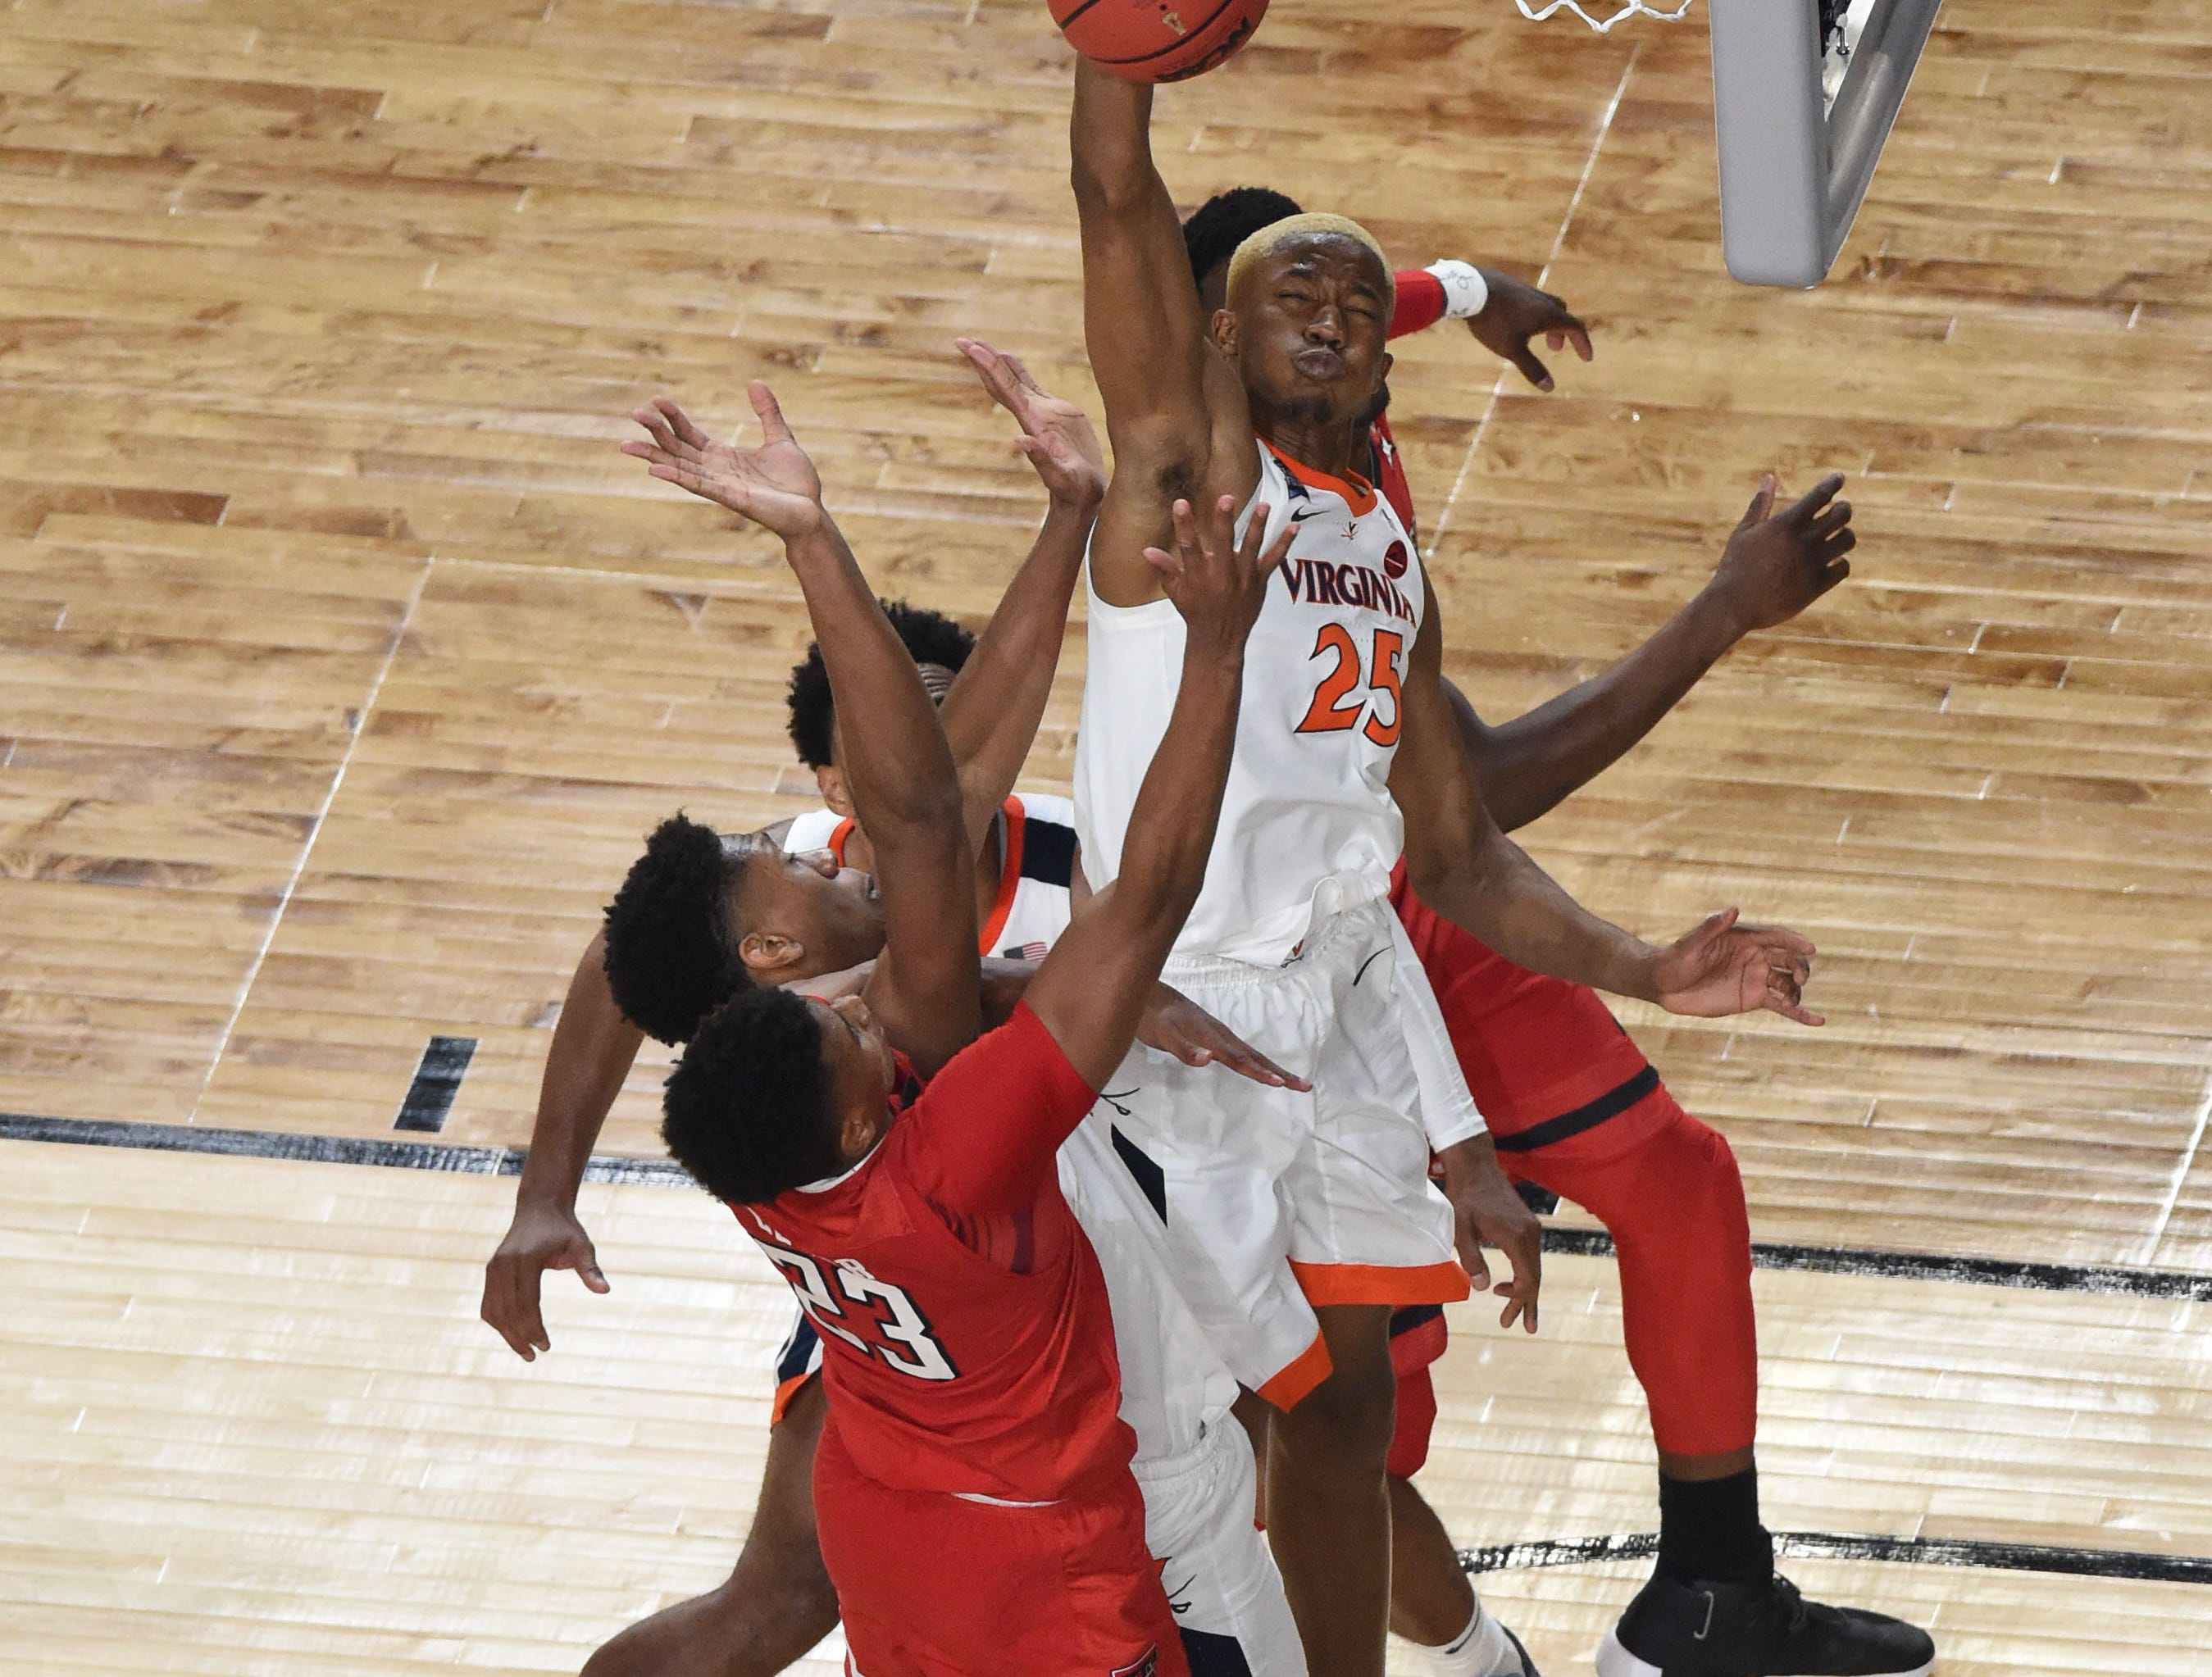 Apr 8, 2019; Minneapolis, MN, USA; Texas Tech Red Raiders guard Jarrett Culver (23) attempts a shot as Virginia Cavaliers forward Mamadi Diakite (25) goes for the block during the second half  in the championship game of the 2019 men's Final Four at US Bank Stadium. Mandatory Credit: Bob Donnan-USA TODAY Sports